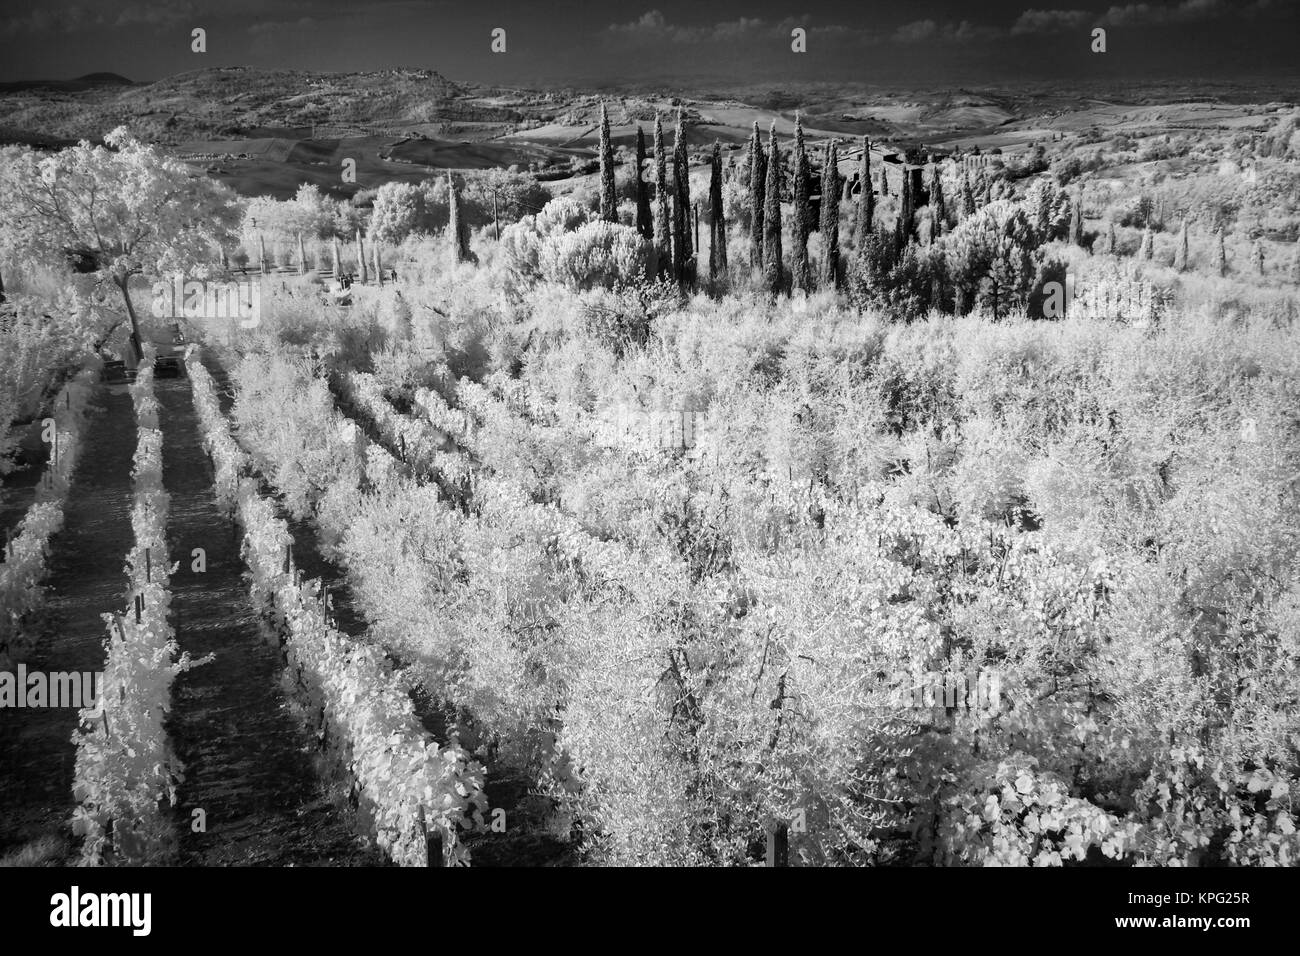 Infra Red Black & White of vineyards, Montepulciano, Italy, Tuscany - Stock Image